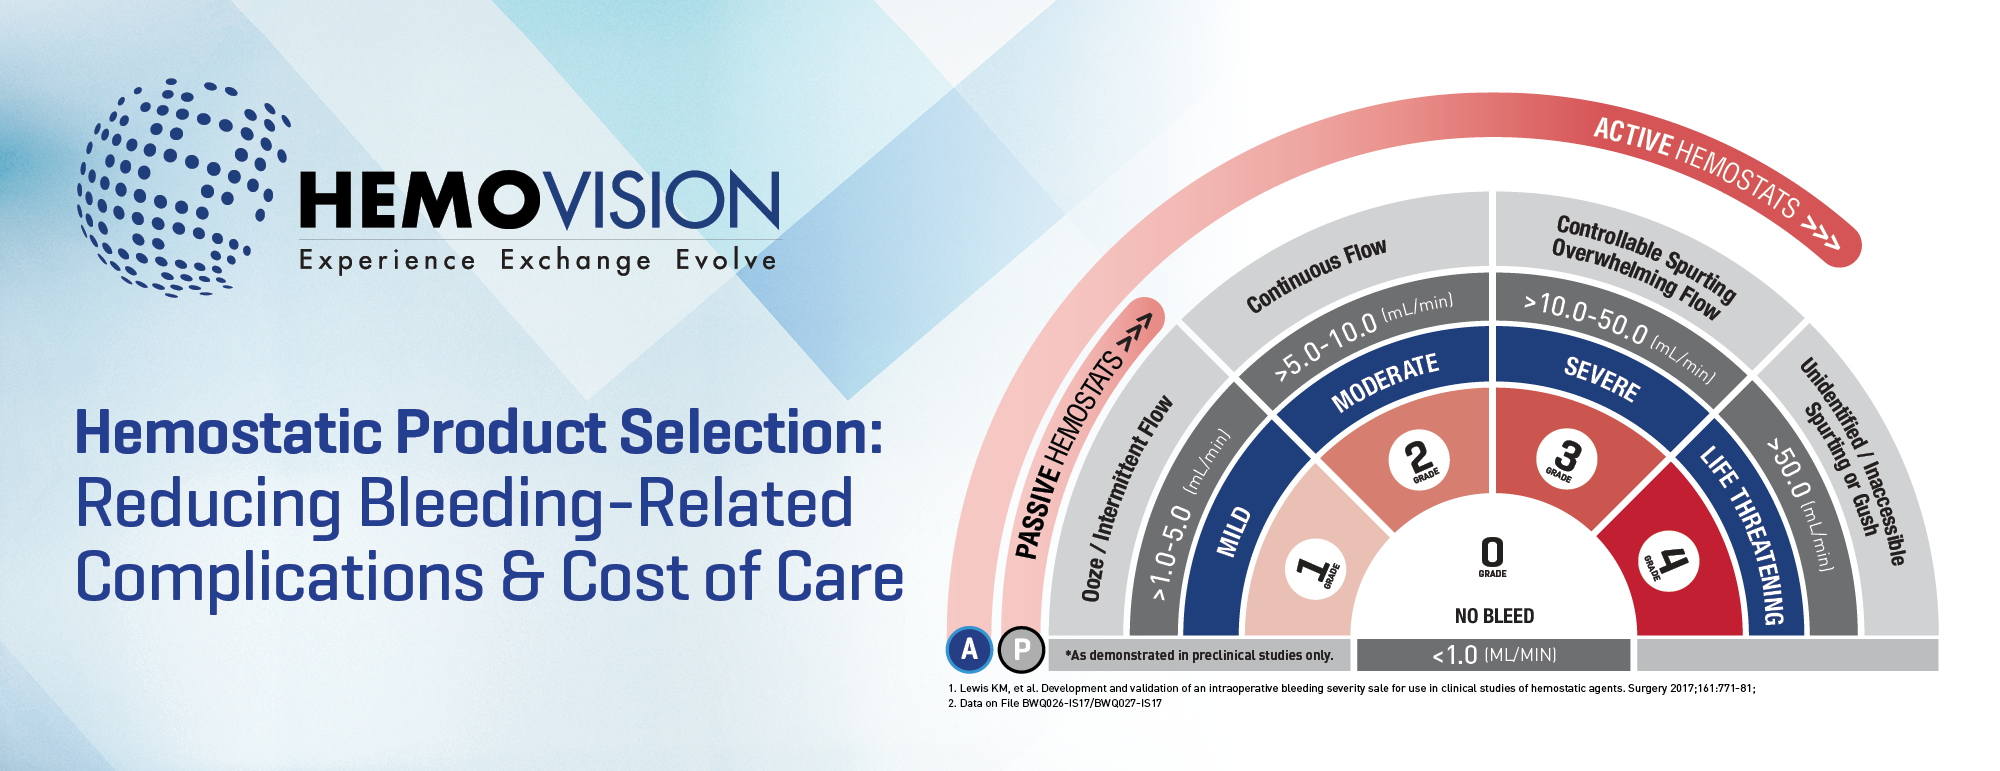 Hemostatic Product Selection: Reducing bleeding-related complications & cost of care